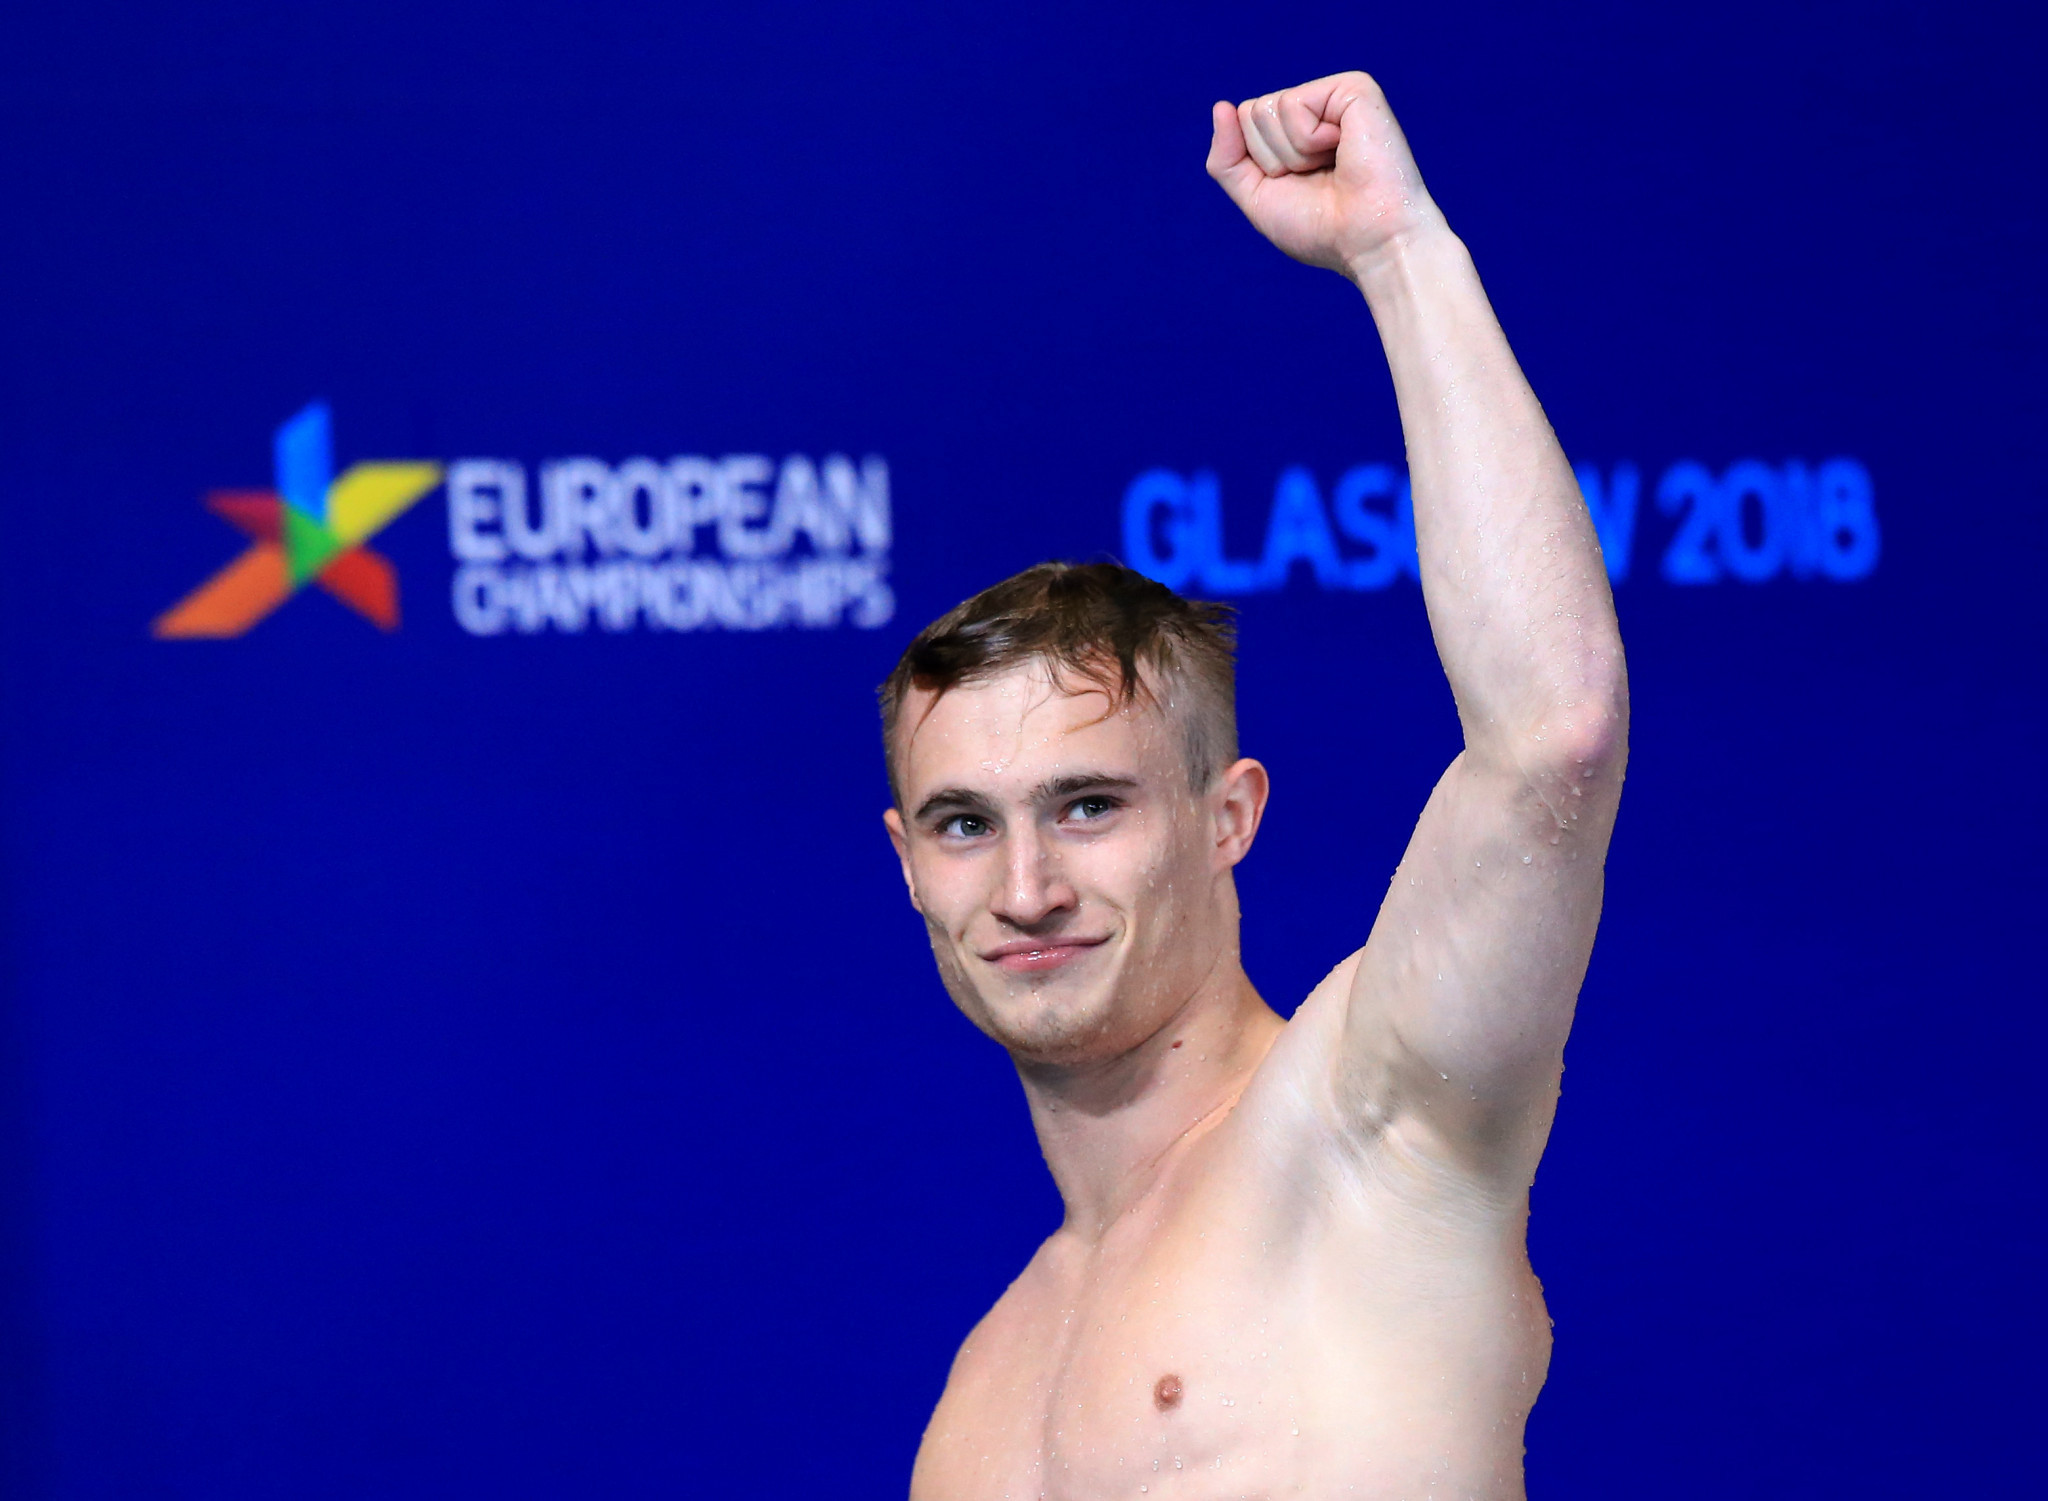 The Olympic champion in the synchronised 3m springboard event Jack Laugher then won gold in the second diving final of the day, the 1m springboard final, with a score of 414.60 ©Getty Images